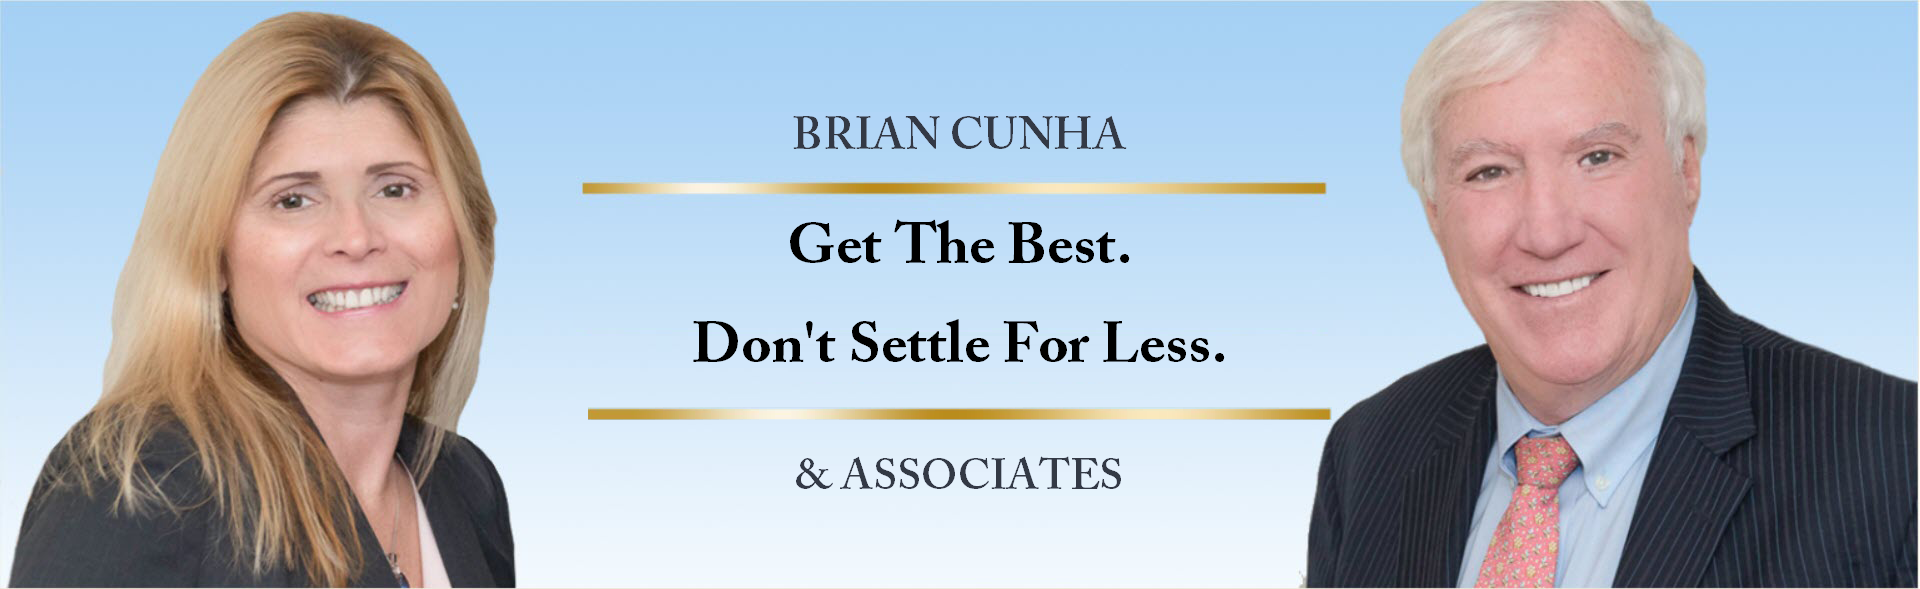 Brian Cunha & Associates Law Office  Car Accident Lawyer